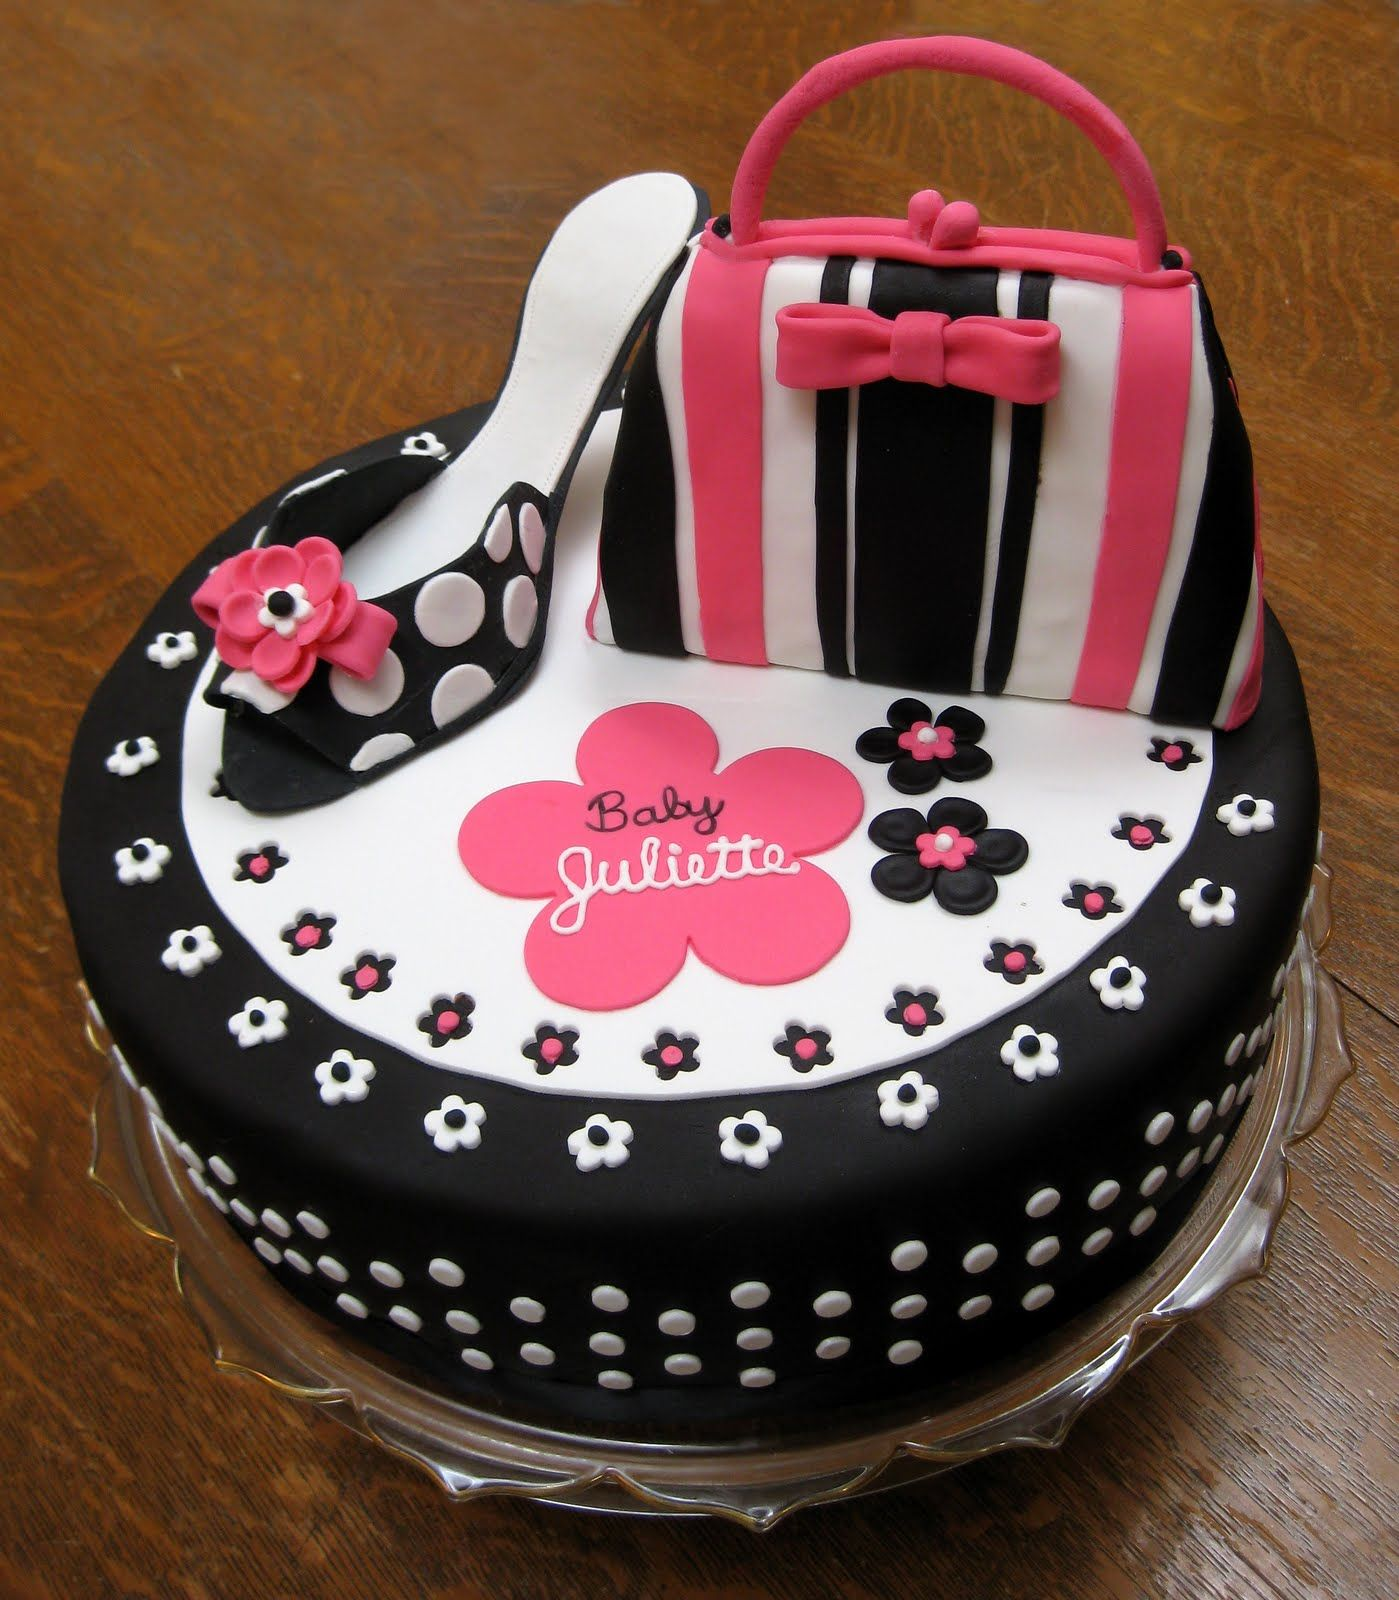 Amazing Cakes By Vanessa A Black and Hot Pink Cake with polka